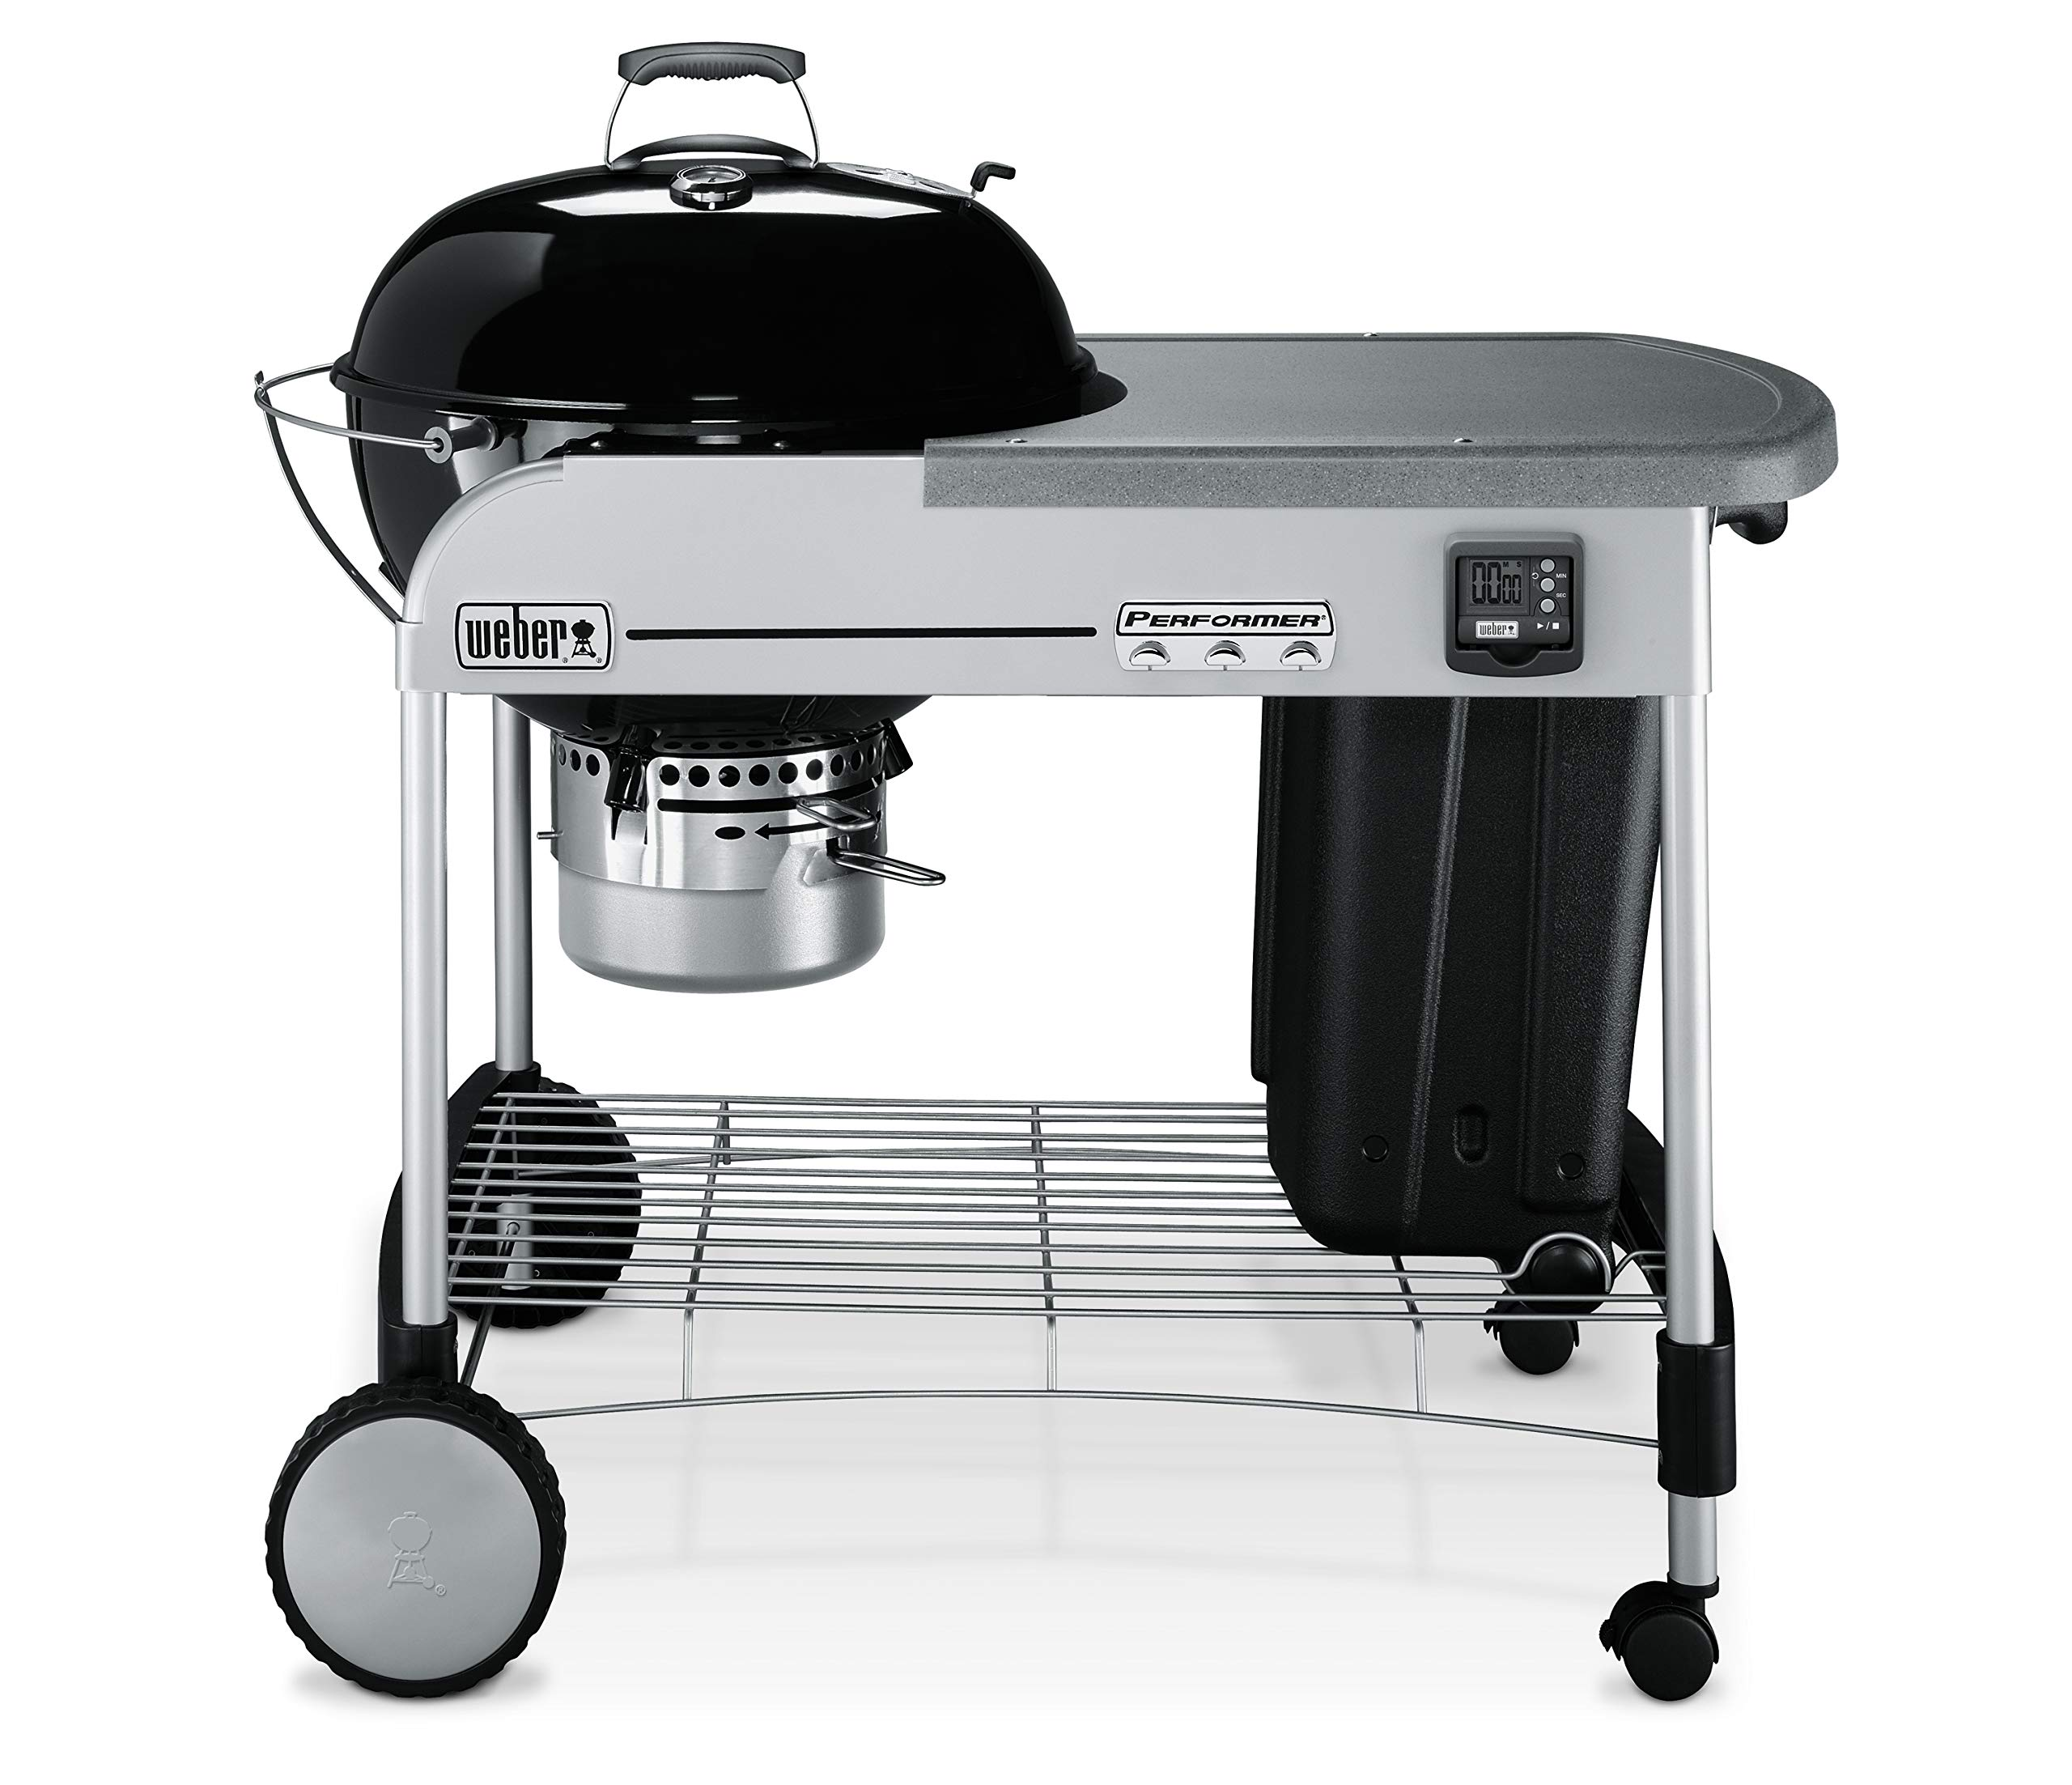 Weber 15401001 Performer Premium Charcoal Grill, 22-Inch, Black, 0,